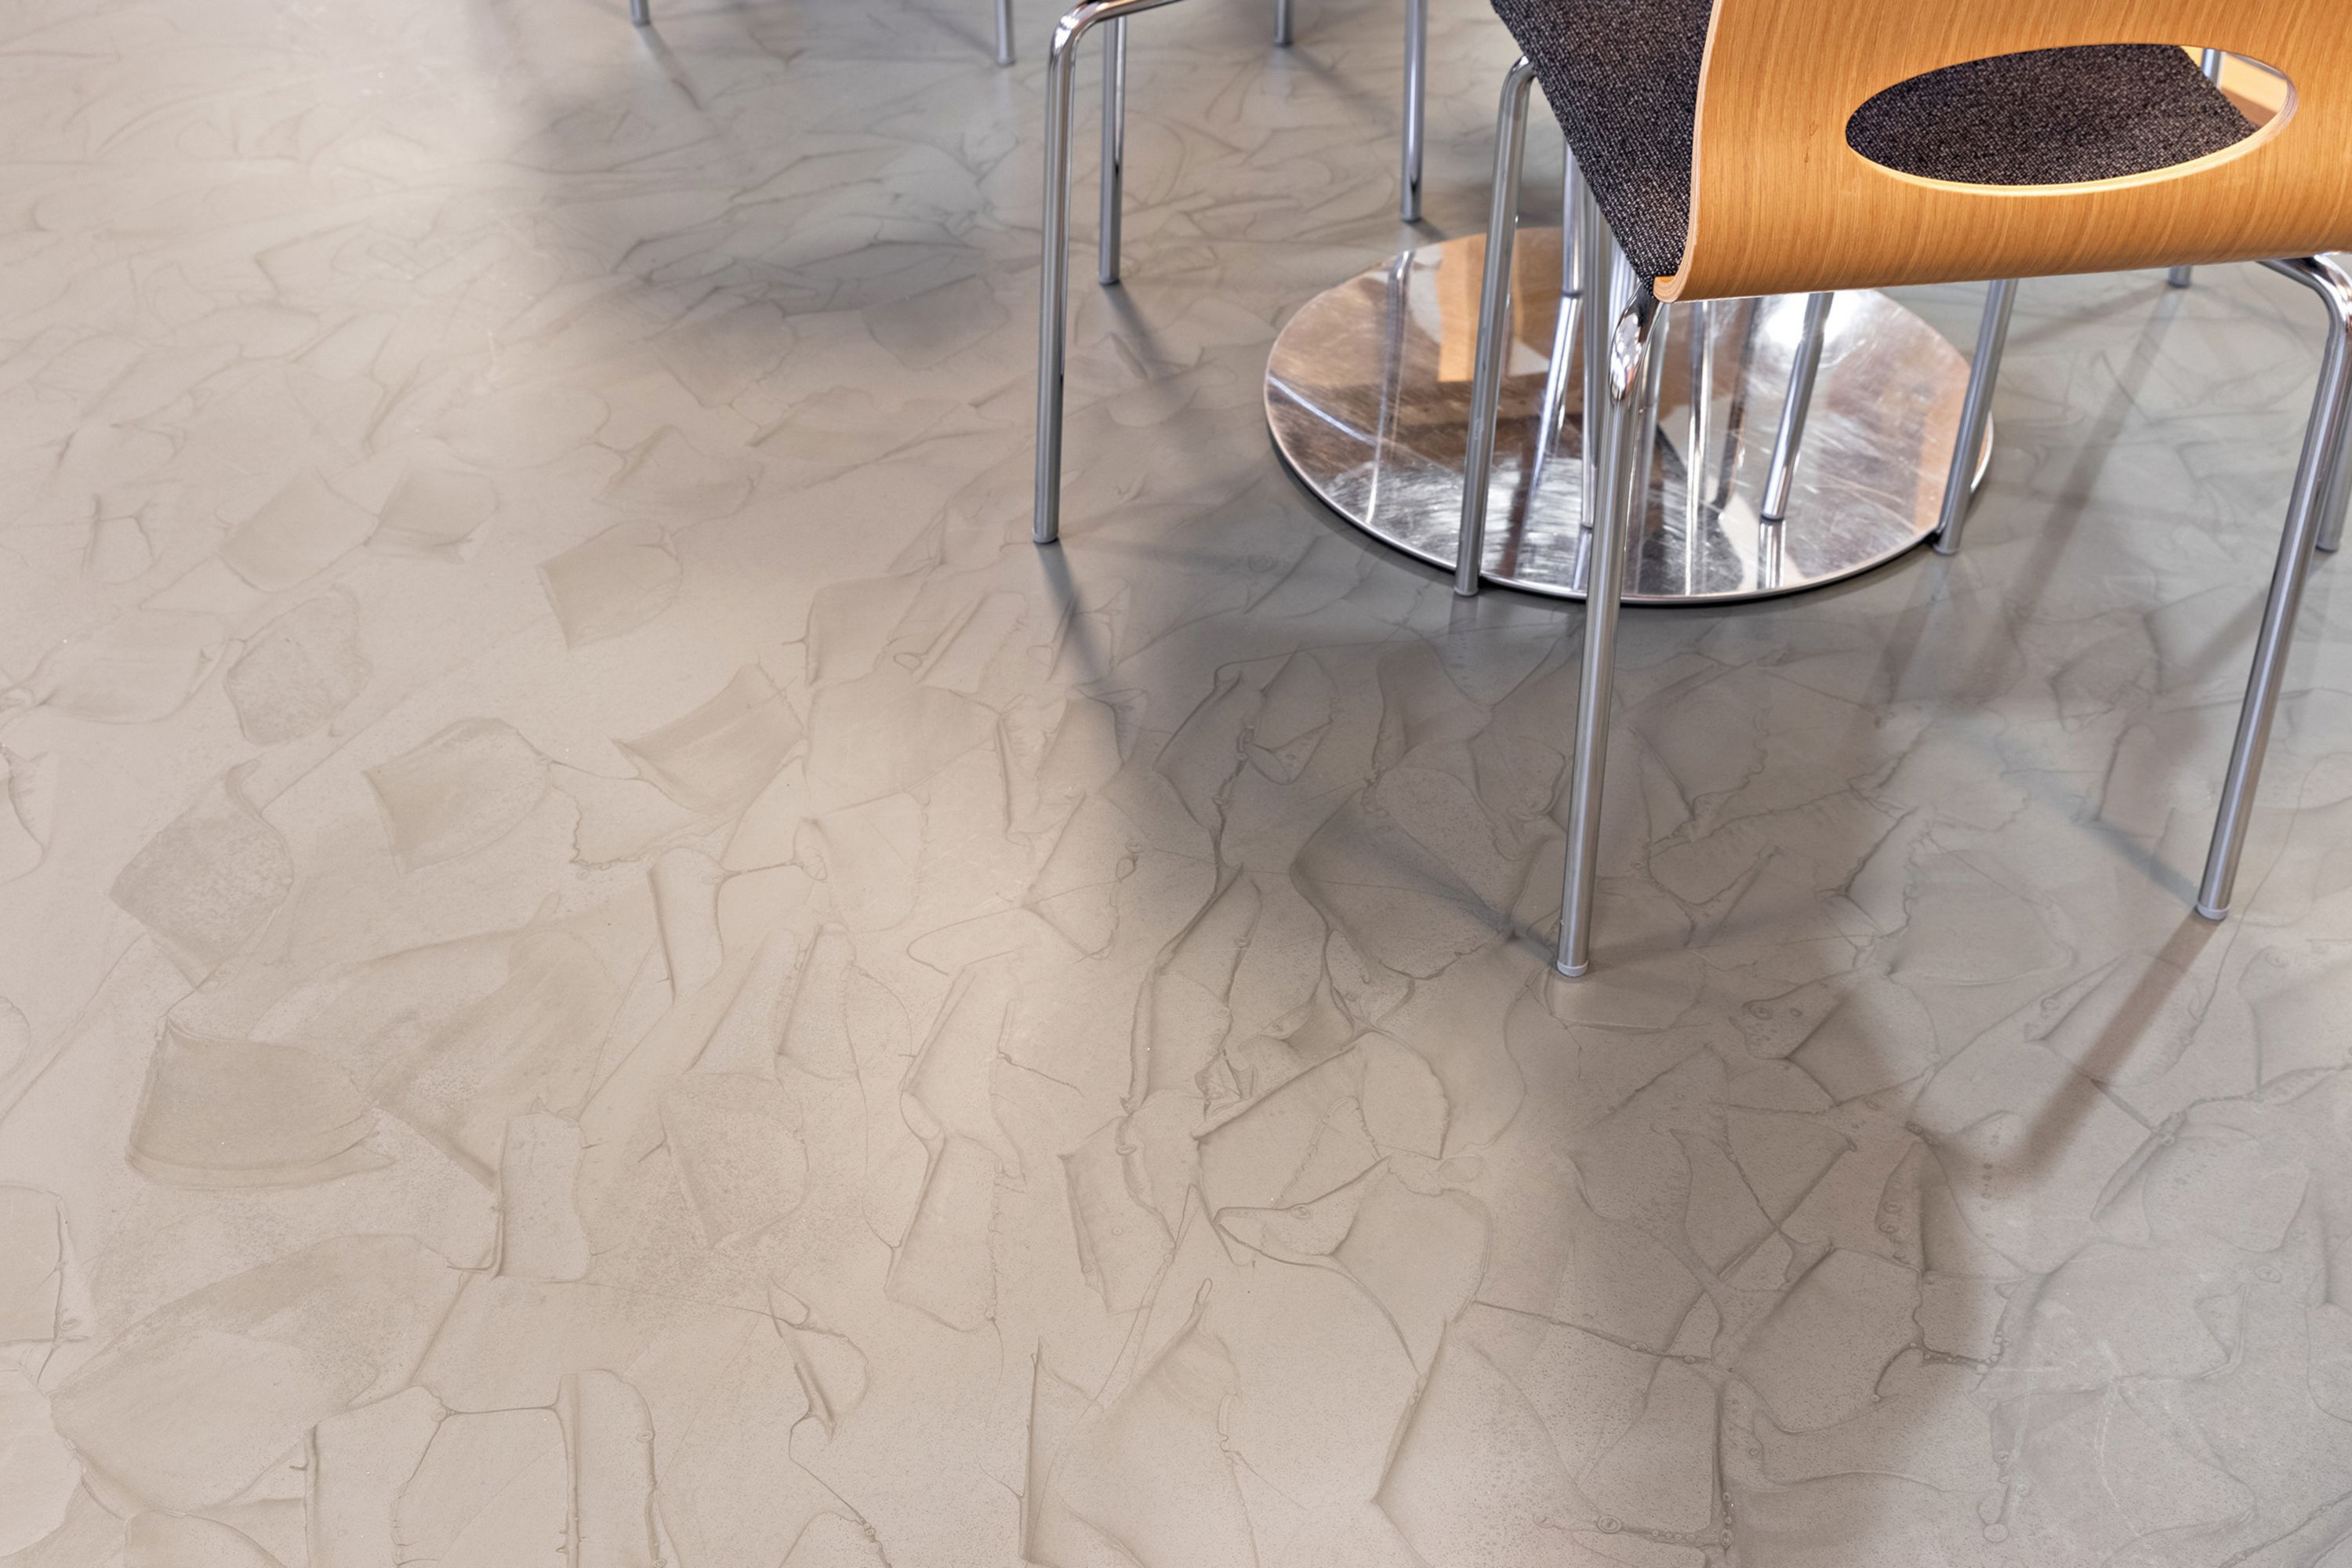 Sika ComforFloor in the canteen and  break rooms of the Oulu City Hall in Finland